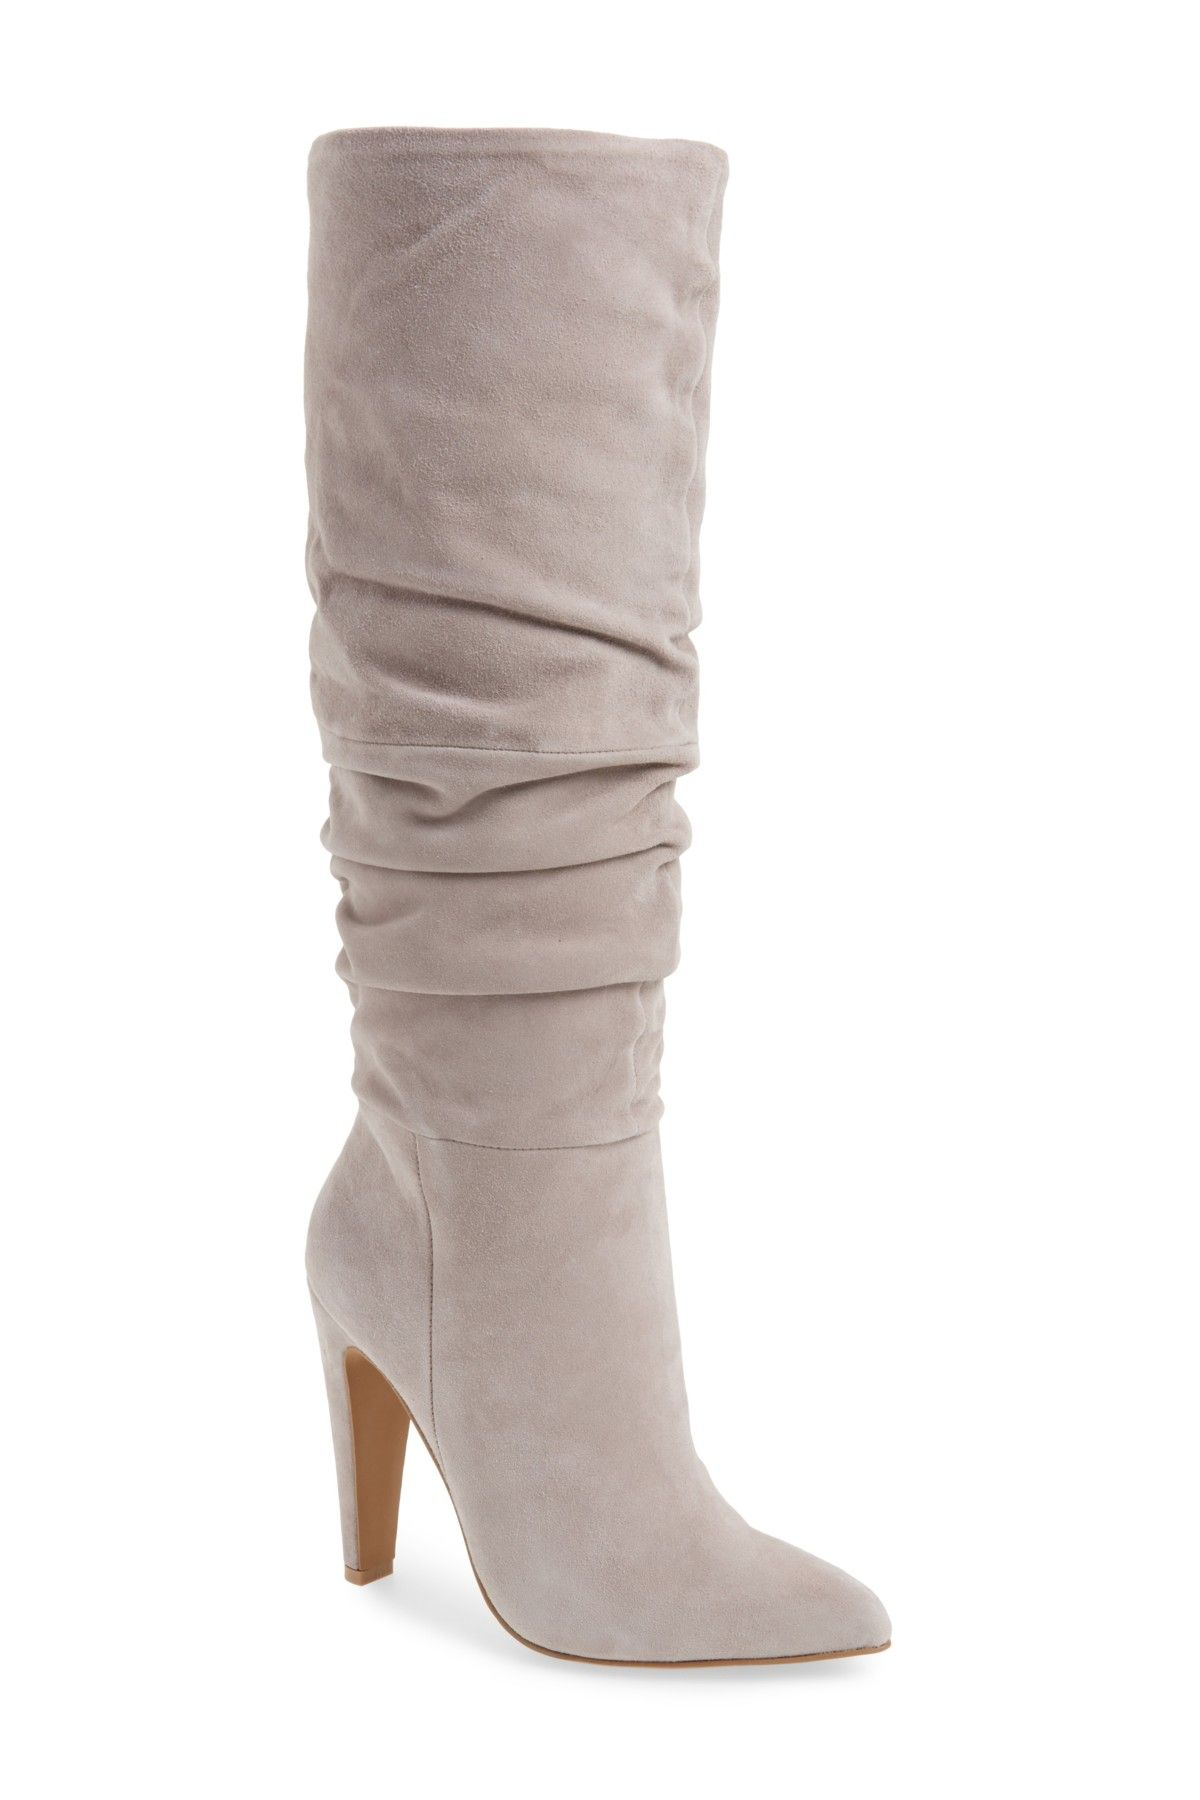 8b878c0bcffe Carrie Slouchy Boot by Steve Madden on  nordstrom rack